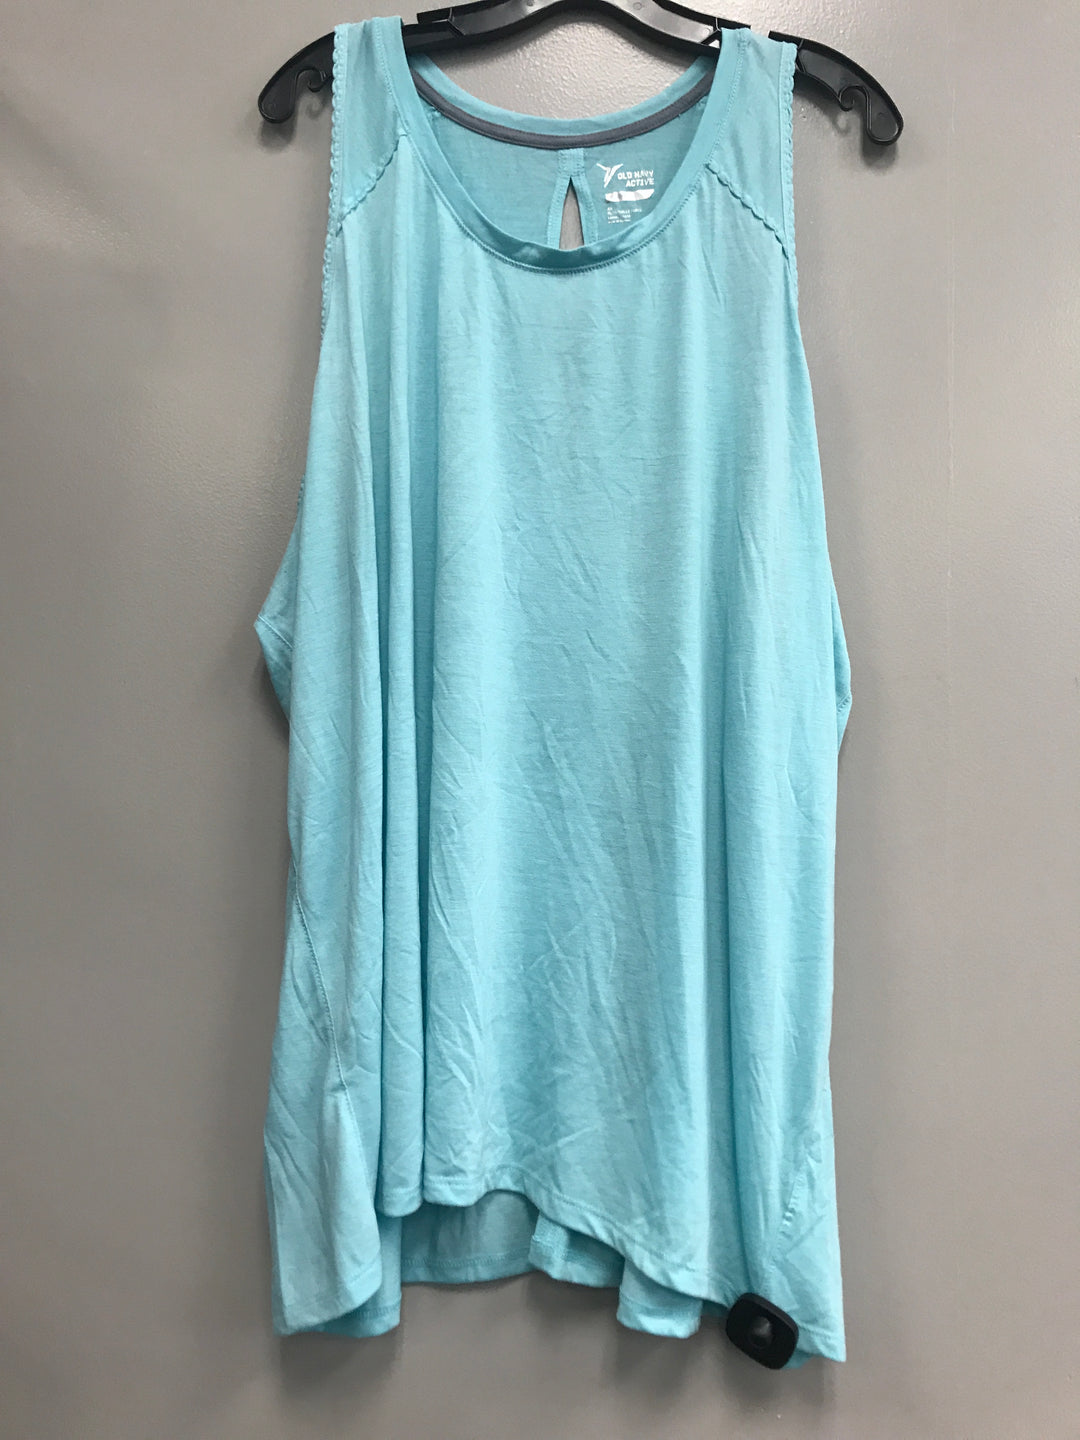 Primary Photo - BRAND: OLD NAVY <BR>STYLE: ATHLETIC TANK TOP <BR>COLOR: LIGHT BLUE <BR>SIZE: 4X <BR>SKU: 313-31344-18018